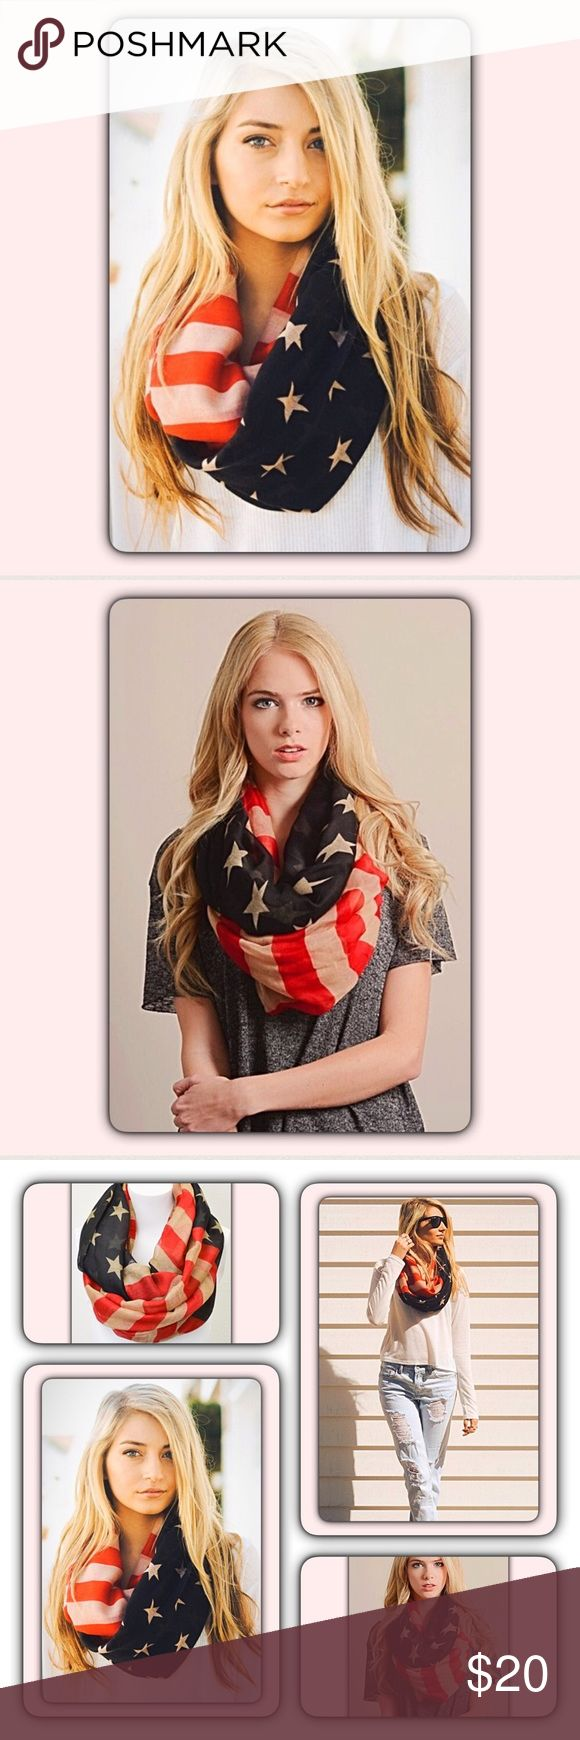 """Vintage American Flag Infinity Scarf Always on trend patriotic vintage American Flag infinity scarf. Lightweight 100% viscose 35""""x35""""  Perfect for Memorial Day & 4th of July, but looks great any time of the year! Vintage shades of off white, red & blue. Accessories Scarves & Wraps"""